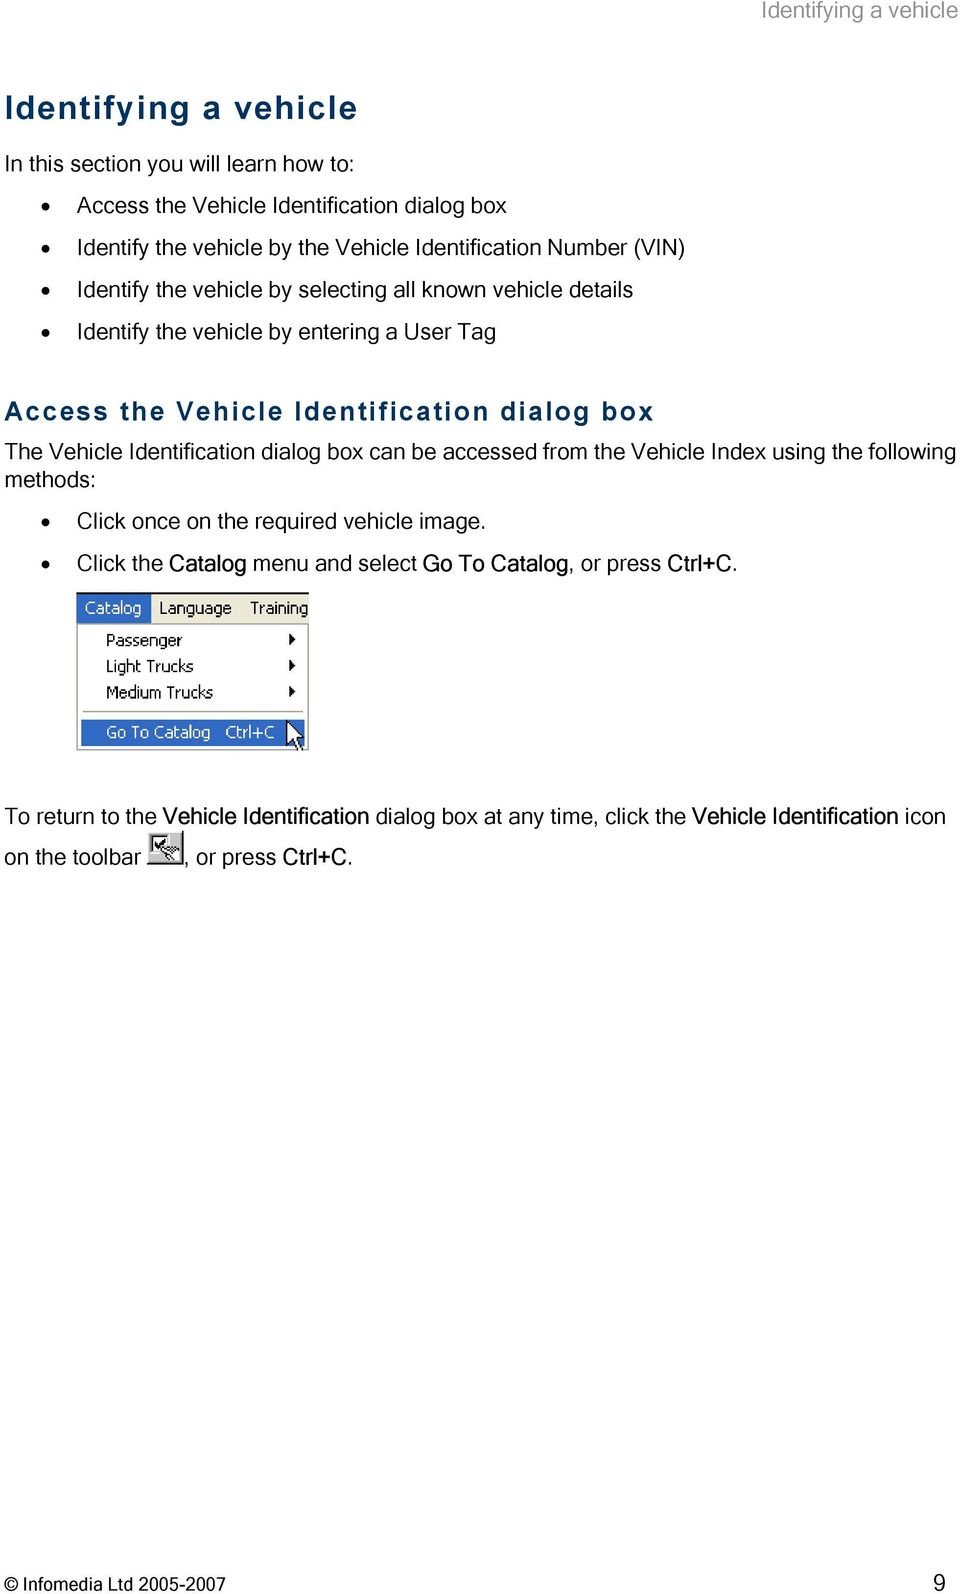 Identification dialog box can be accessed from the Vehicle Index using the following methods: Click once on the required vehicle image.